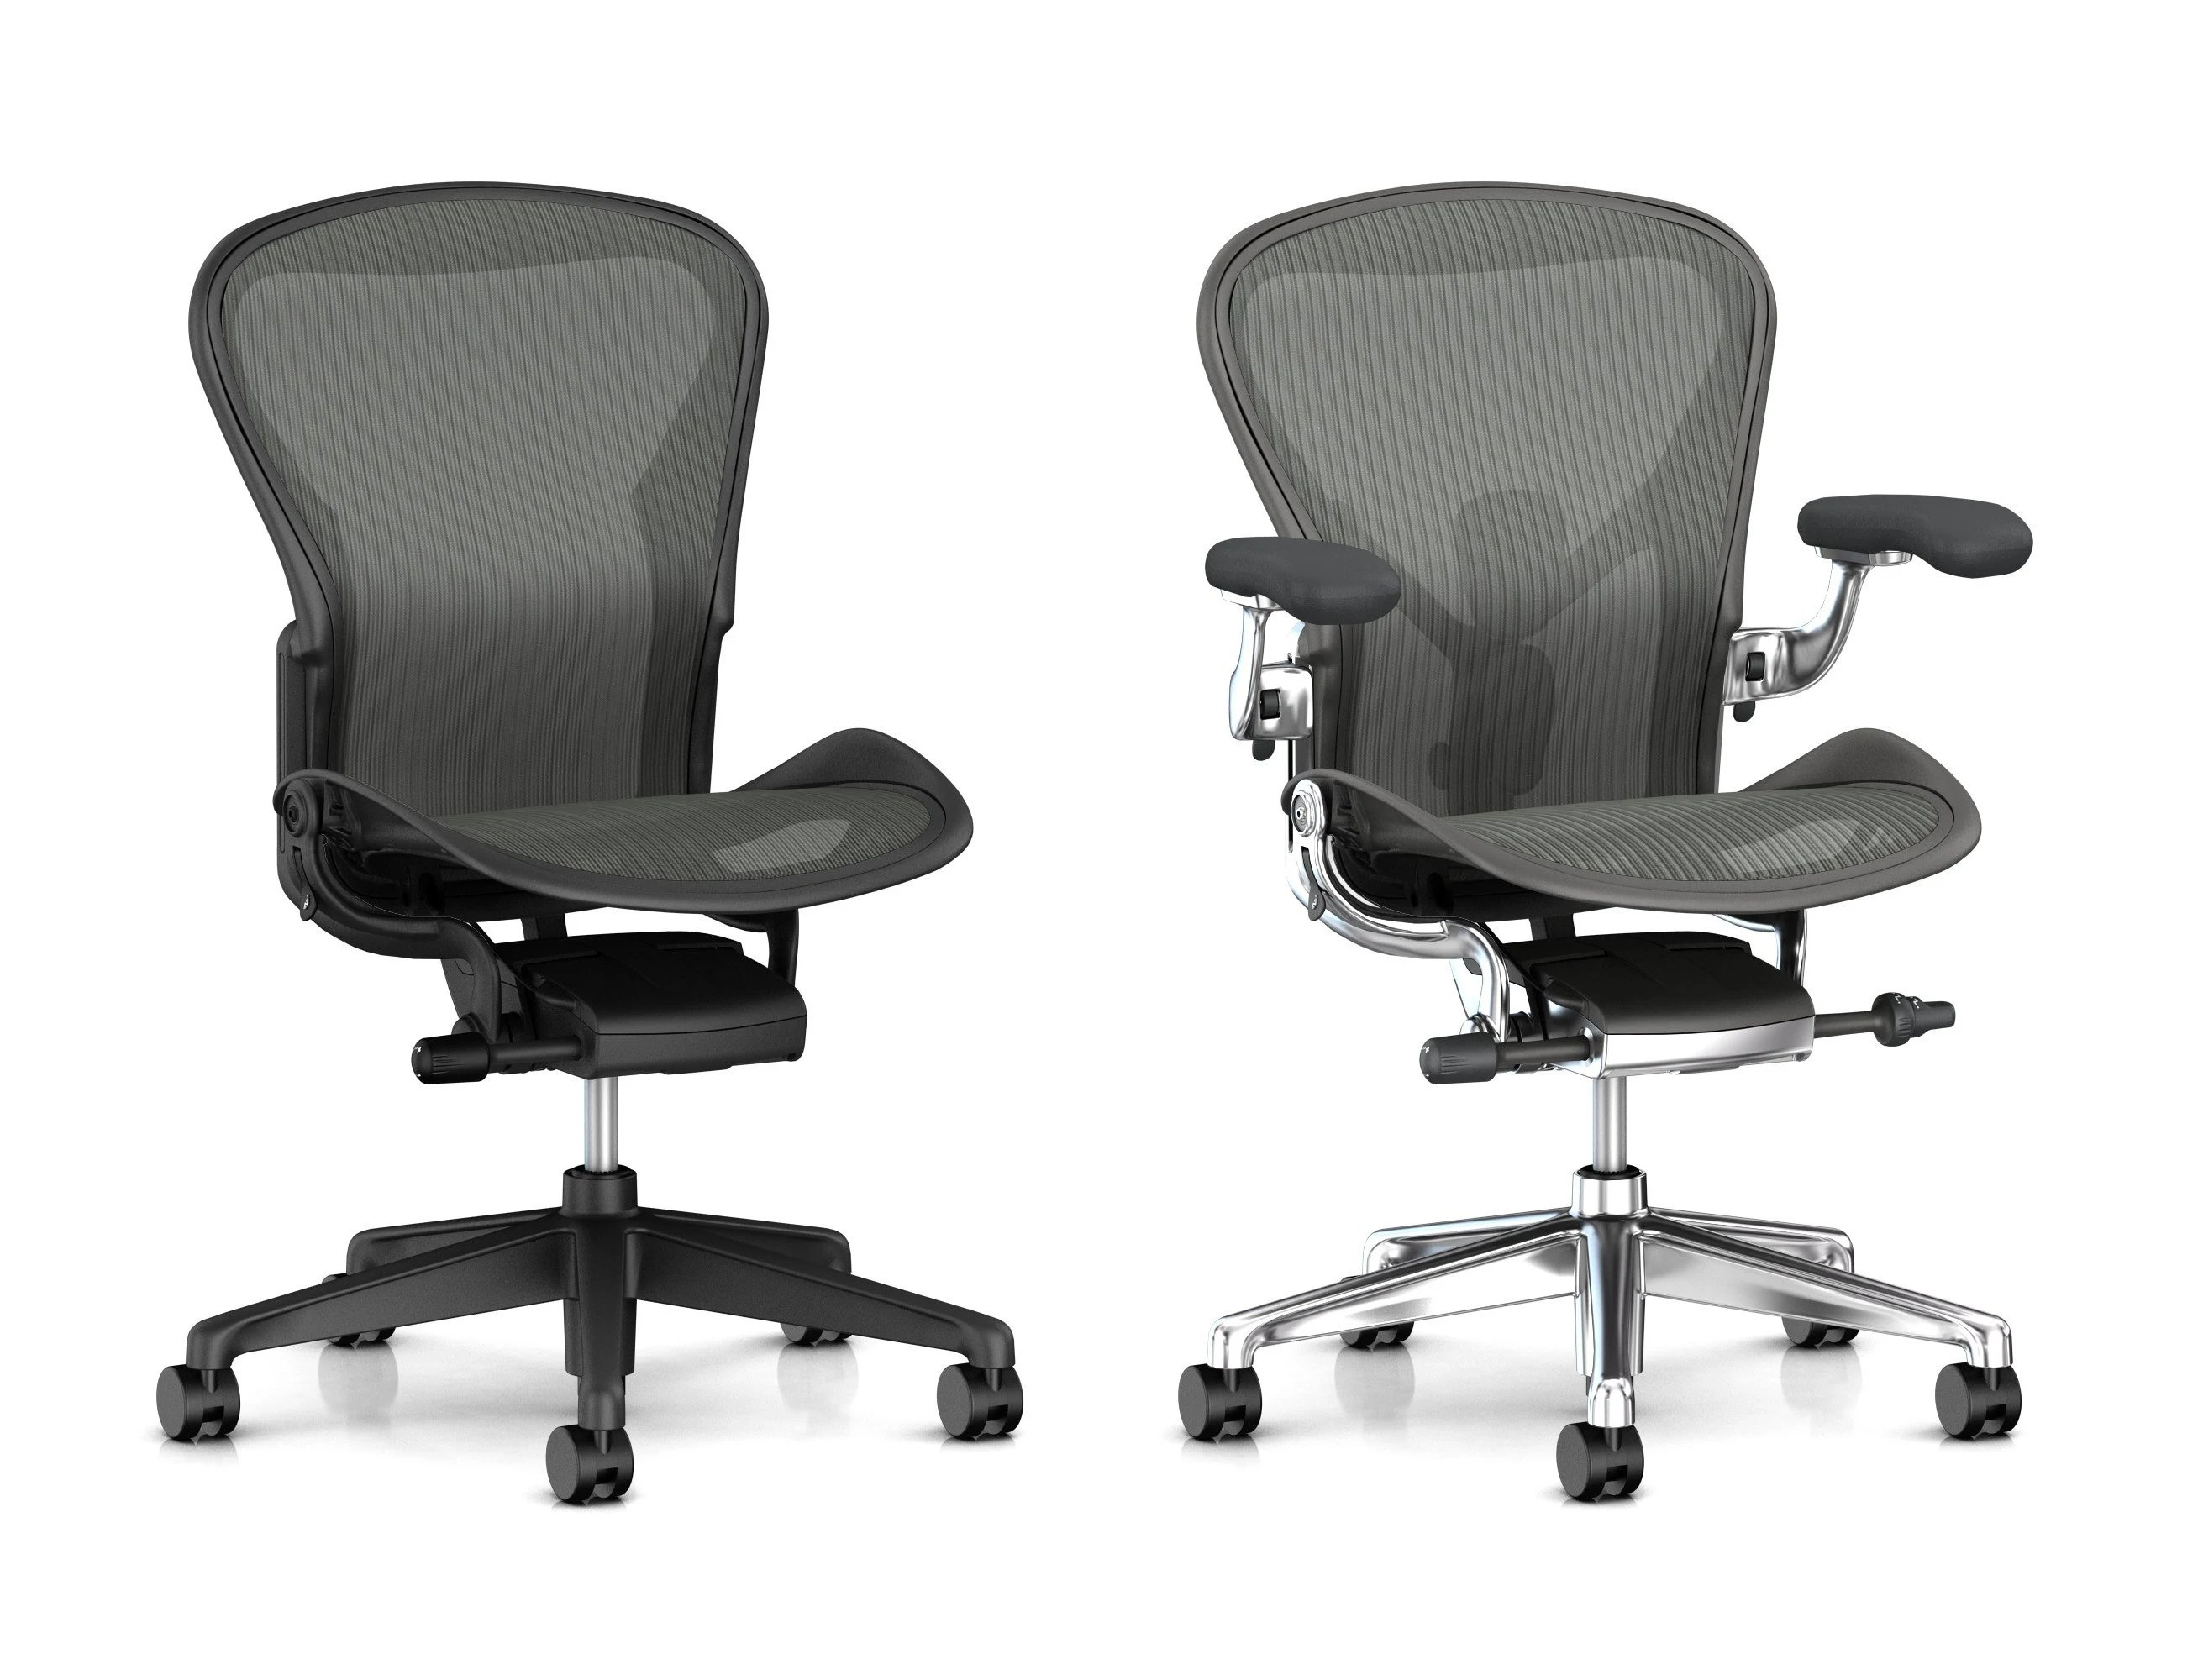 Aero Chair Herman Miller Aeron Chair Build Your Own